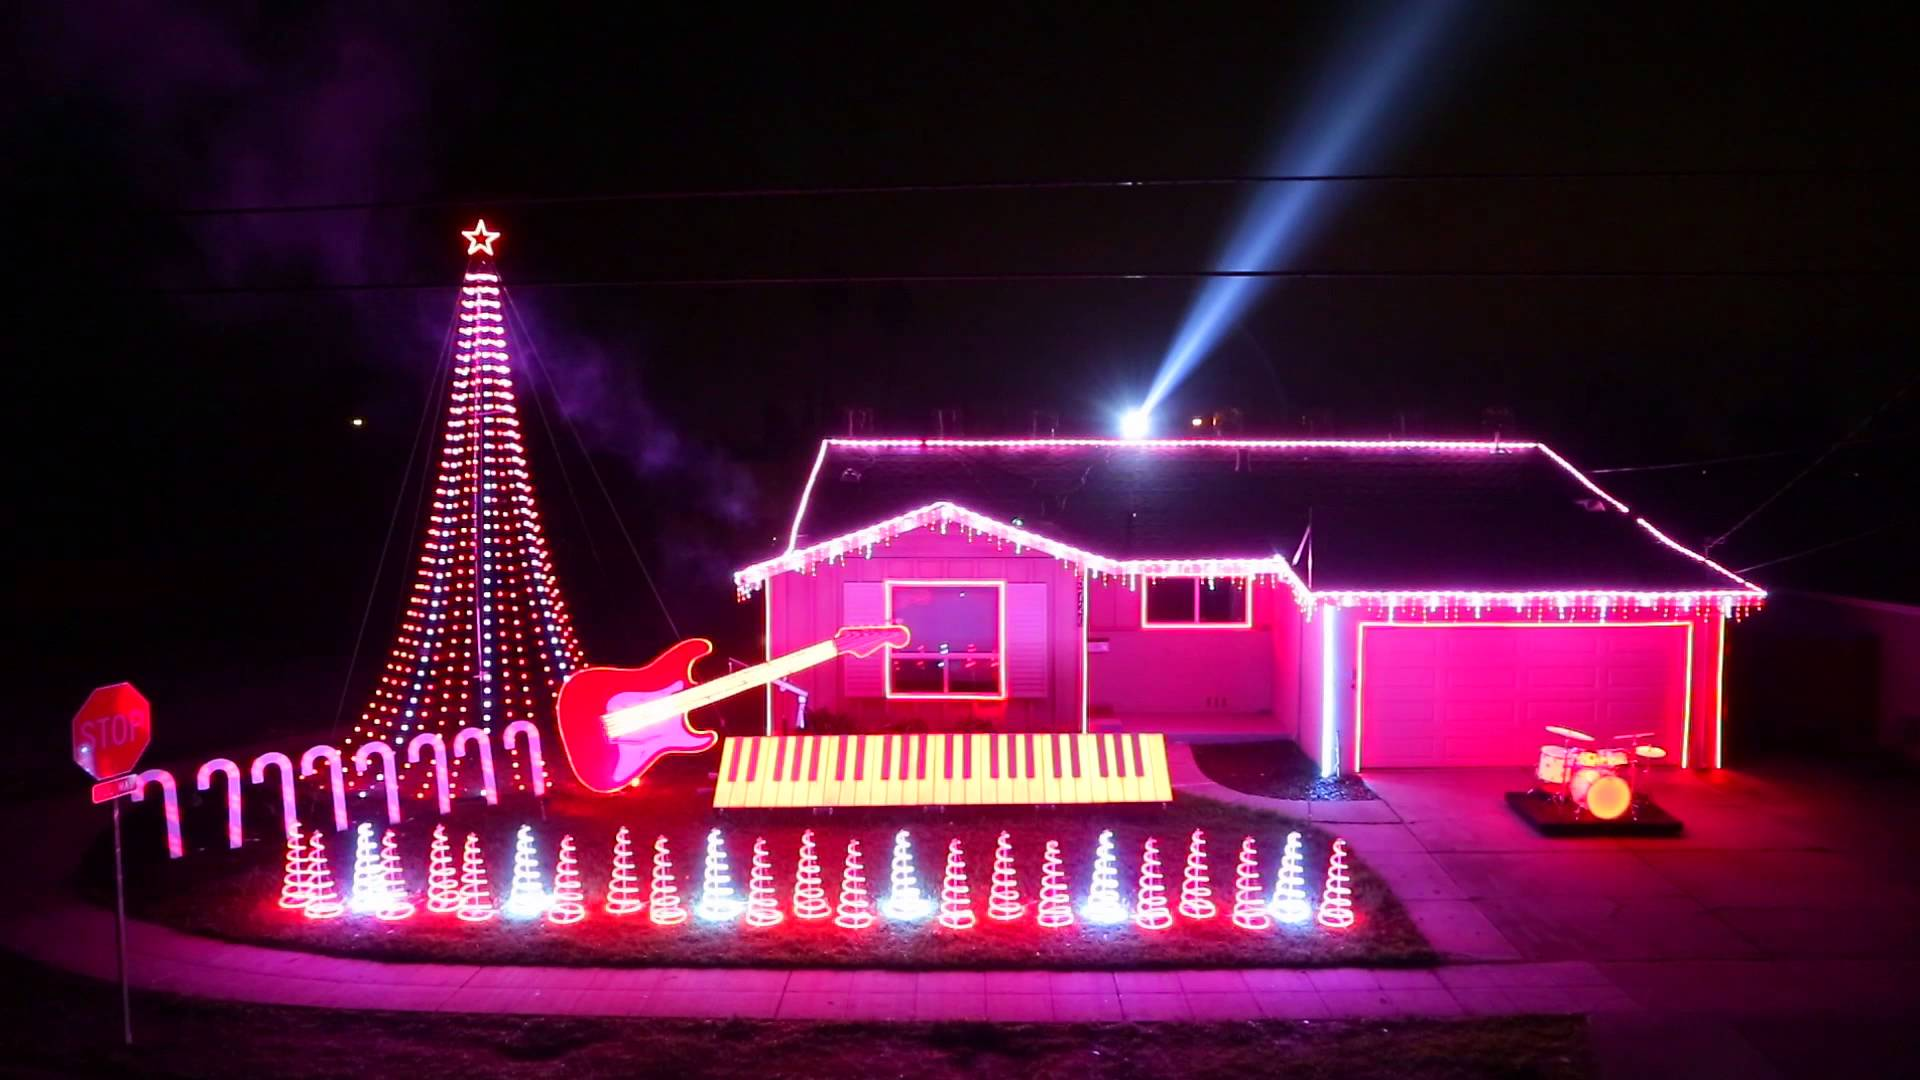 Stunning electric Christmas light display for your home! Image source YouTube.